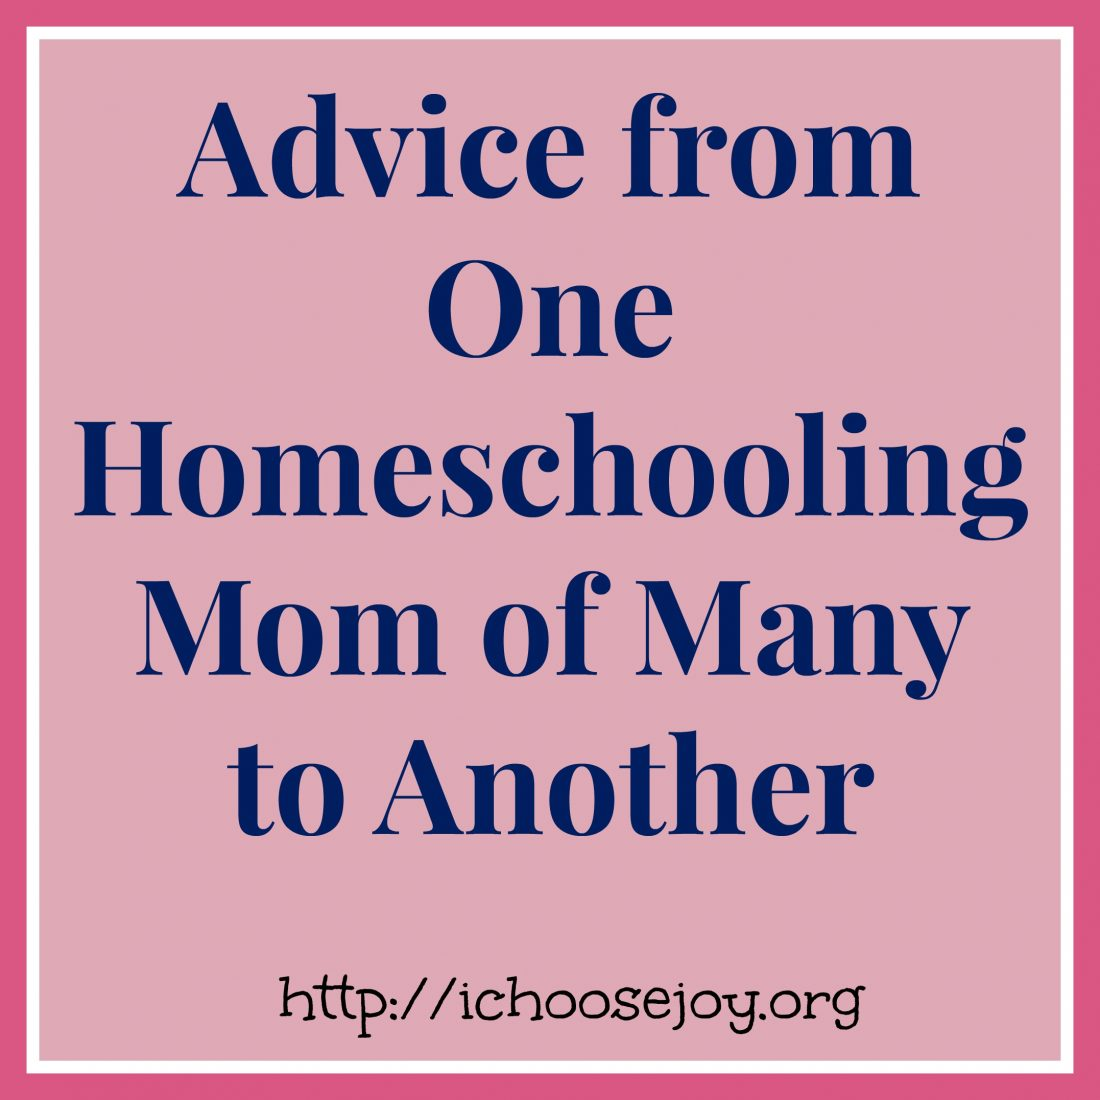 New Series:  Advice from One Homeschooling Mom of Many to Another